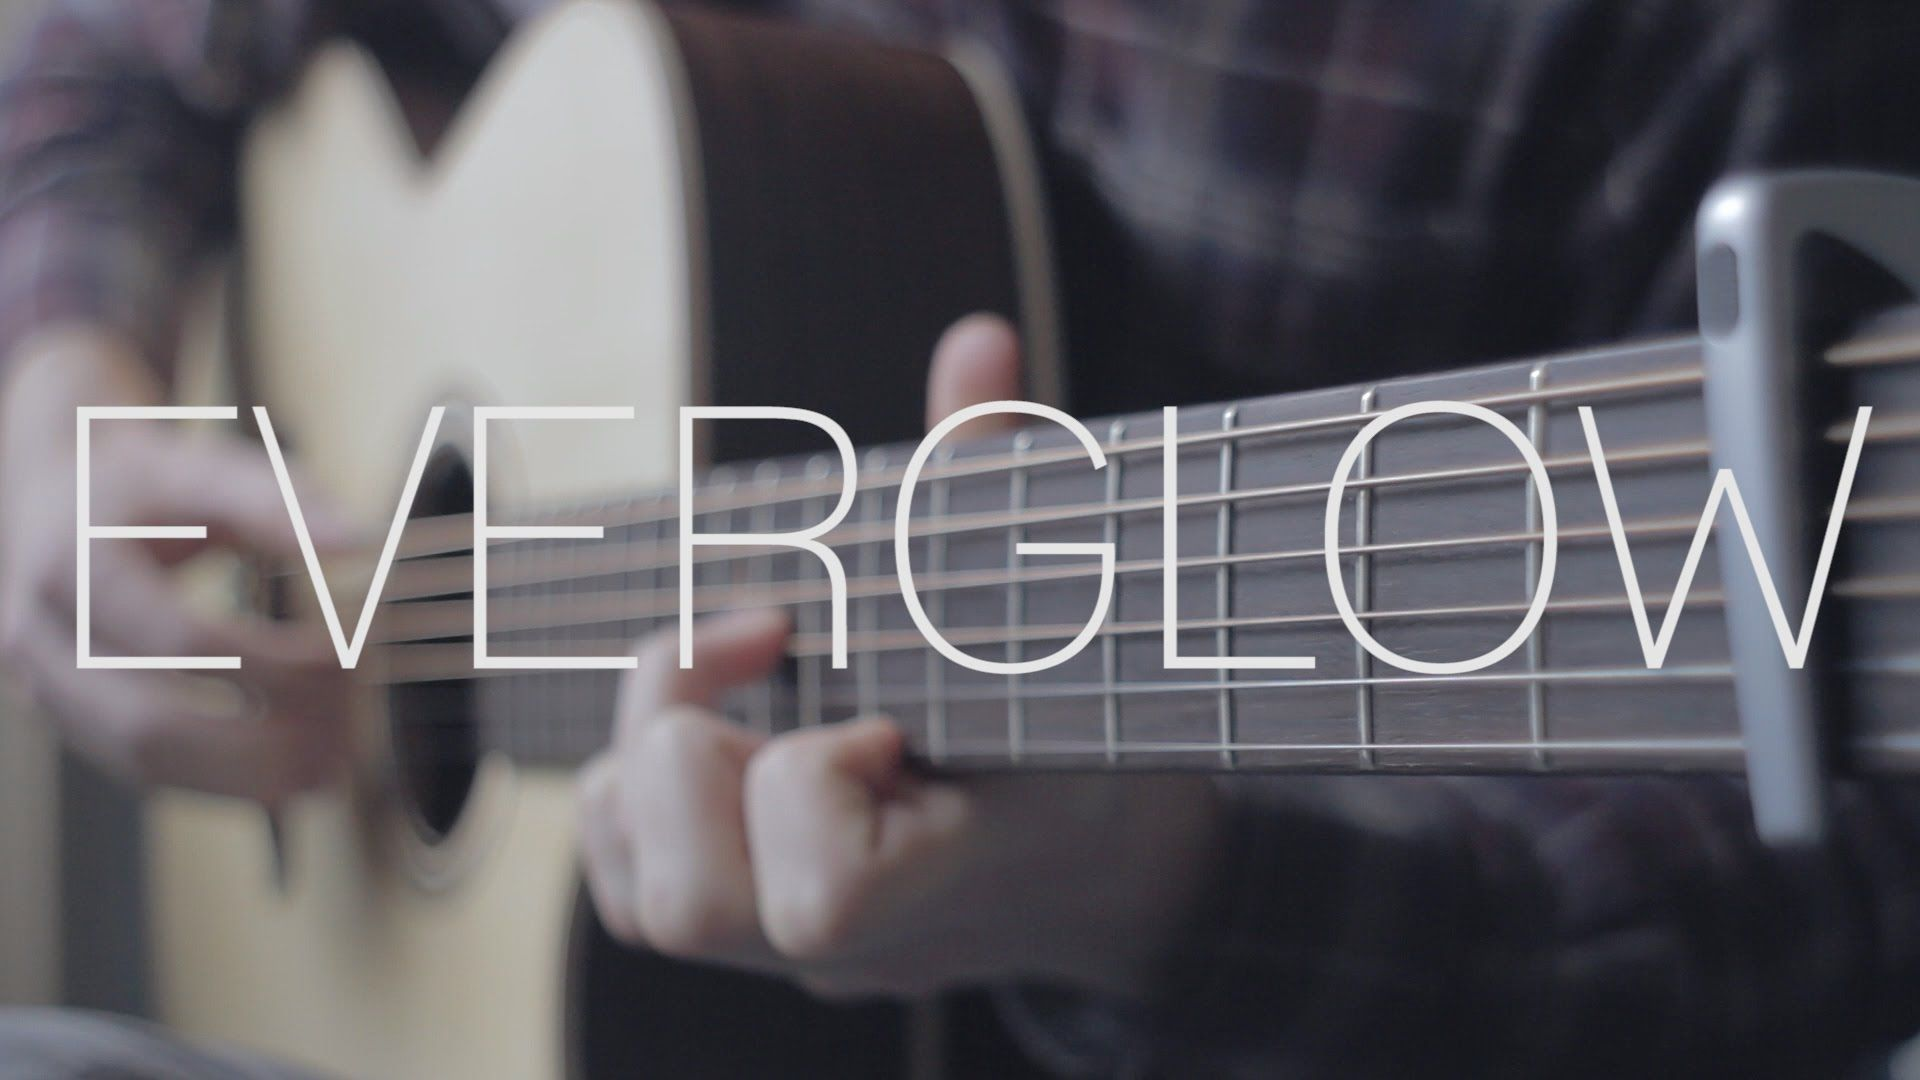 Coldplay Everglow Fingerstyle Guitar Cover Free Tabs Want To